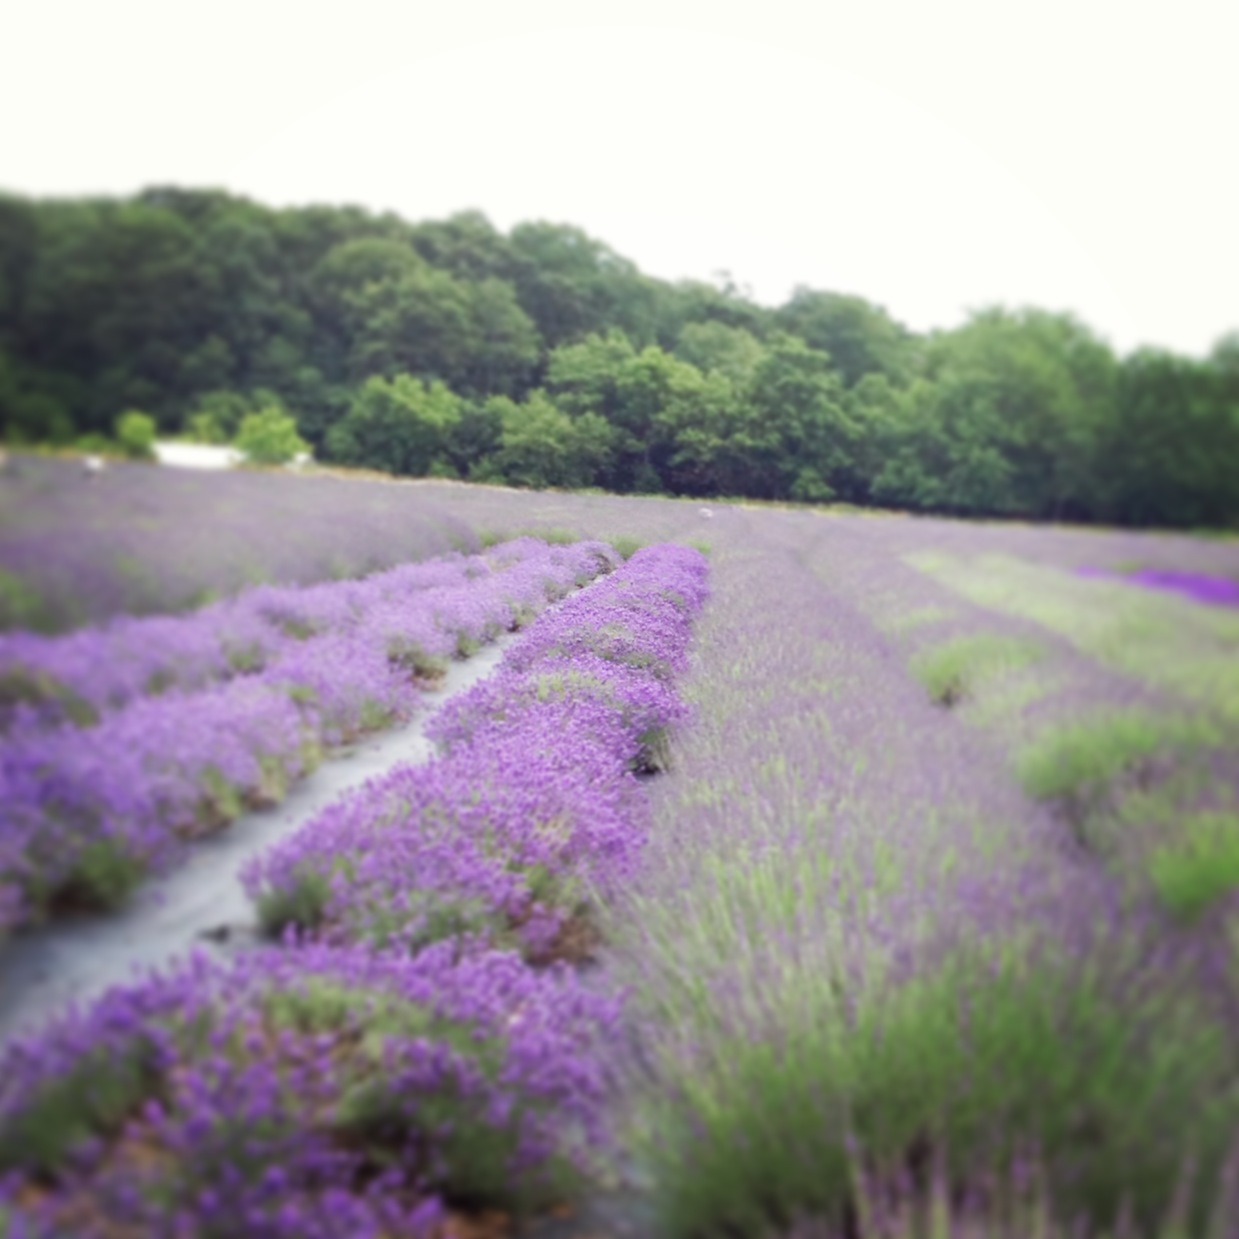 Lavender lavender lavender.  My love of nature. My blog and my Facebook page